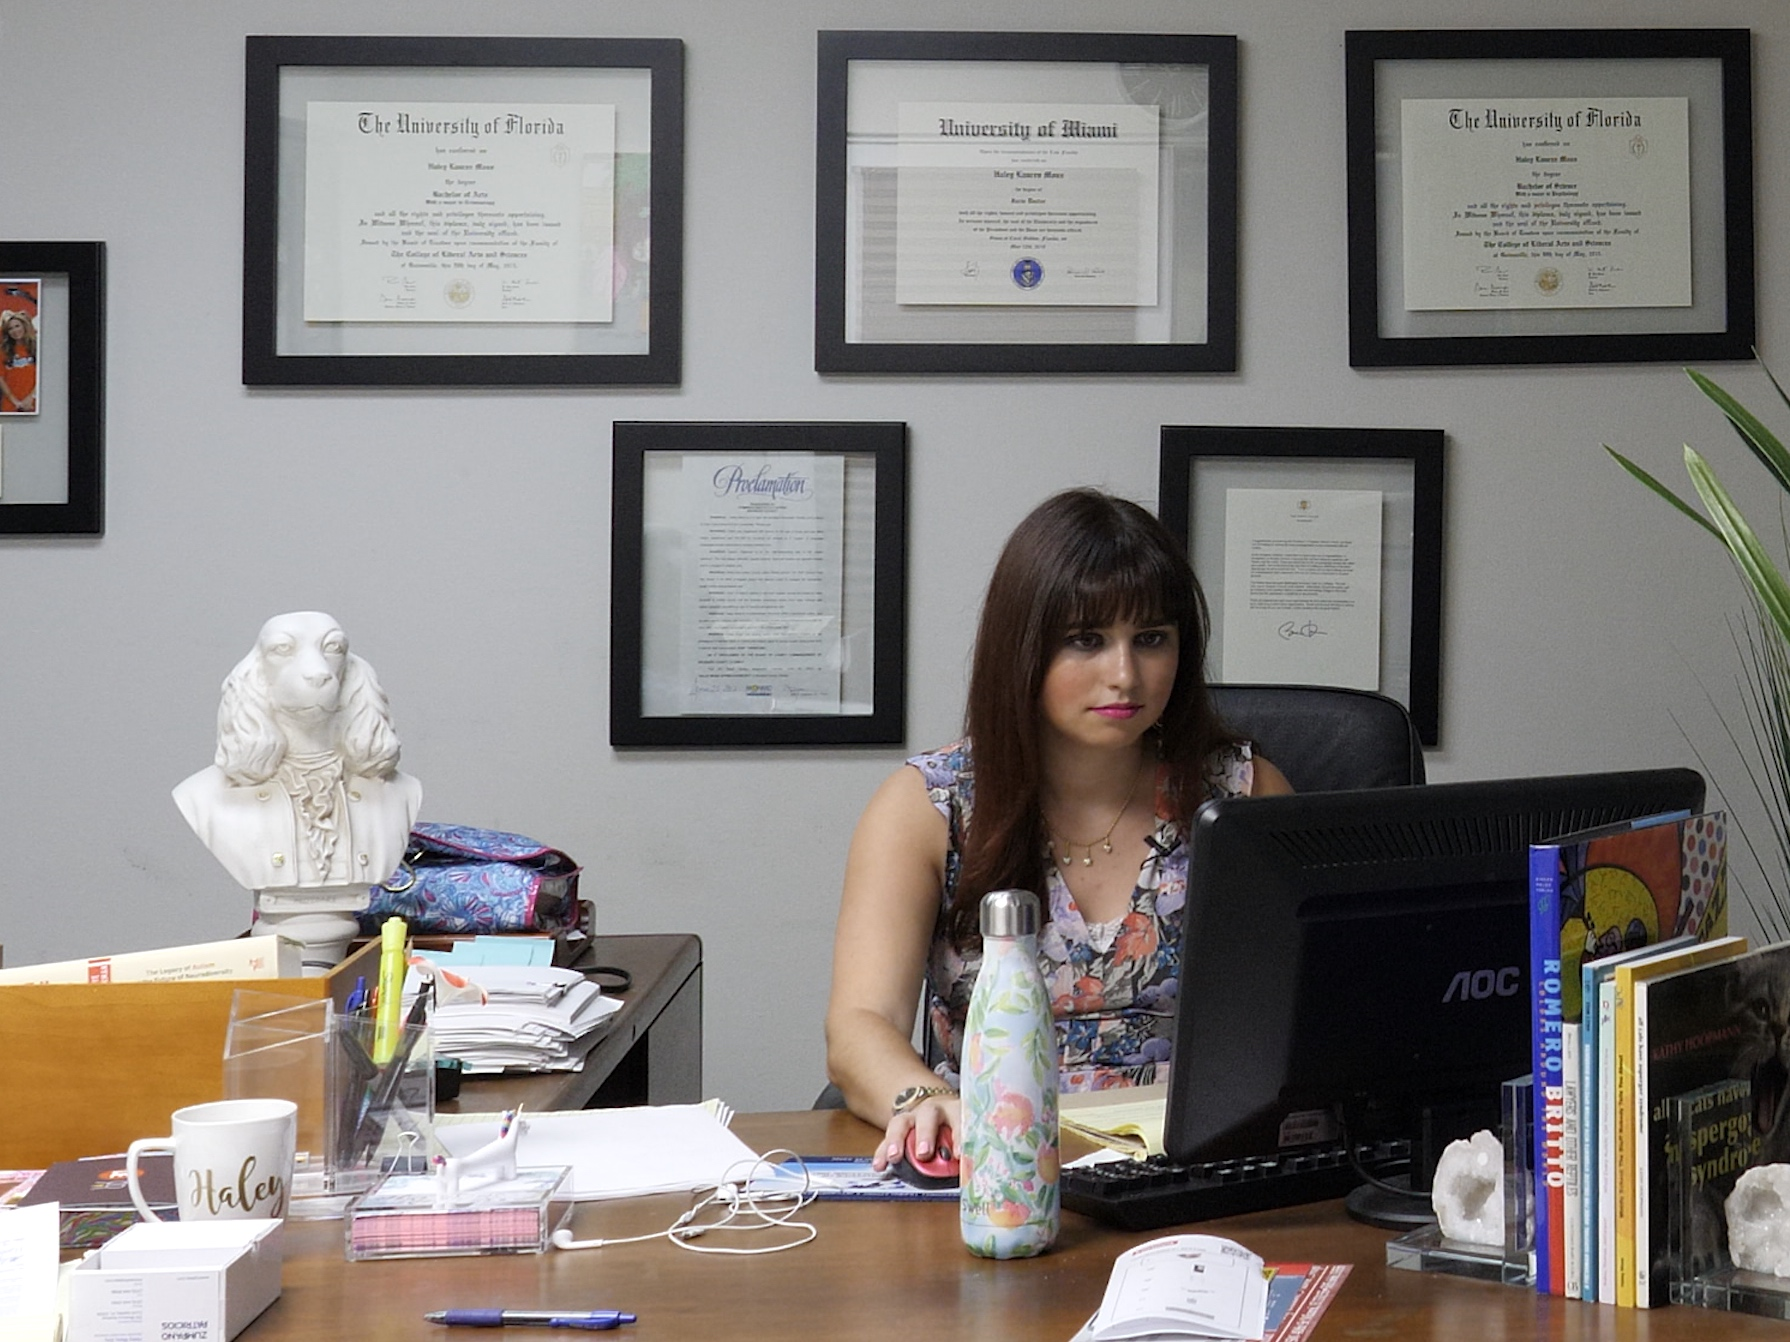 The main character, Haley, sits at her desk, surrounded by diplomas and piles of paperwork